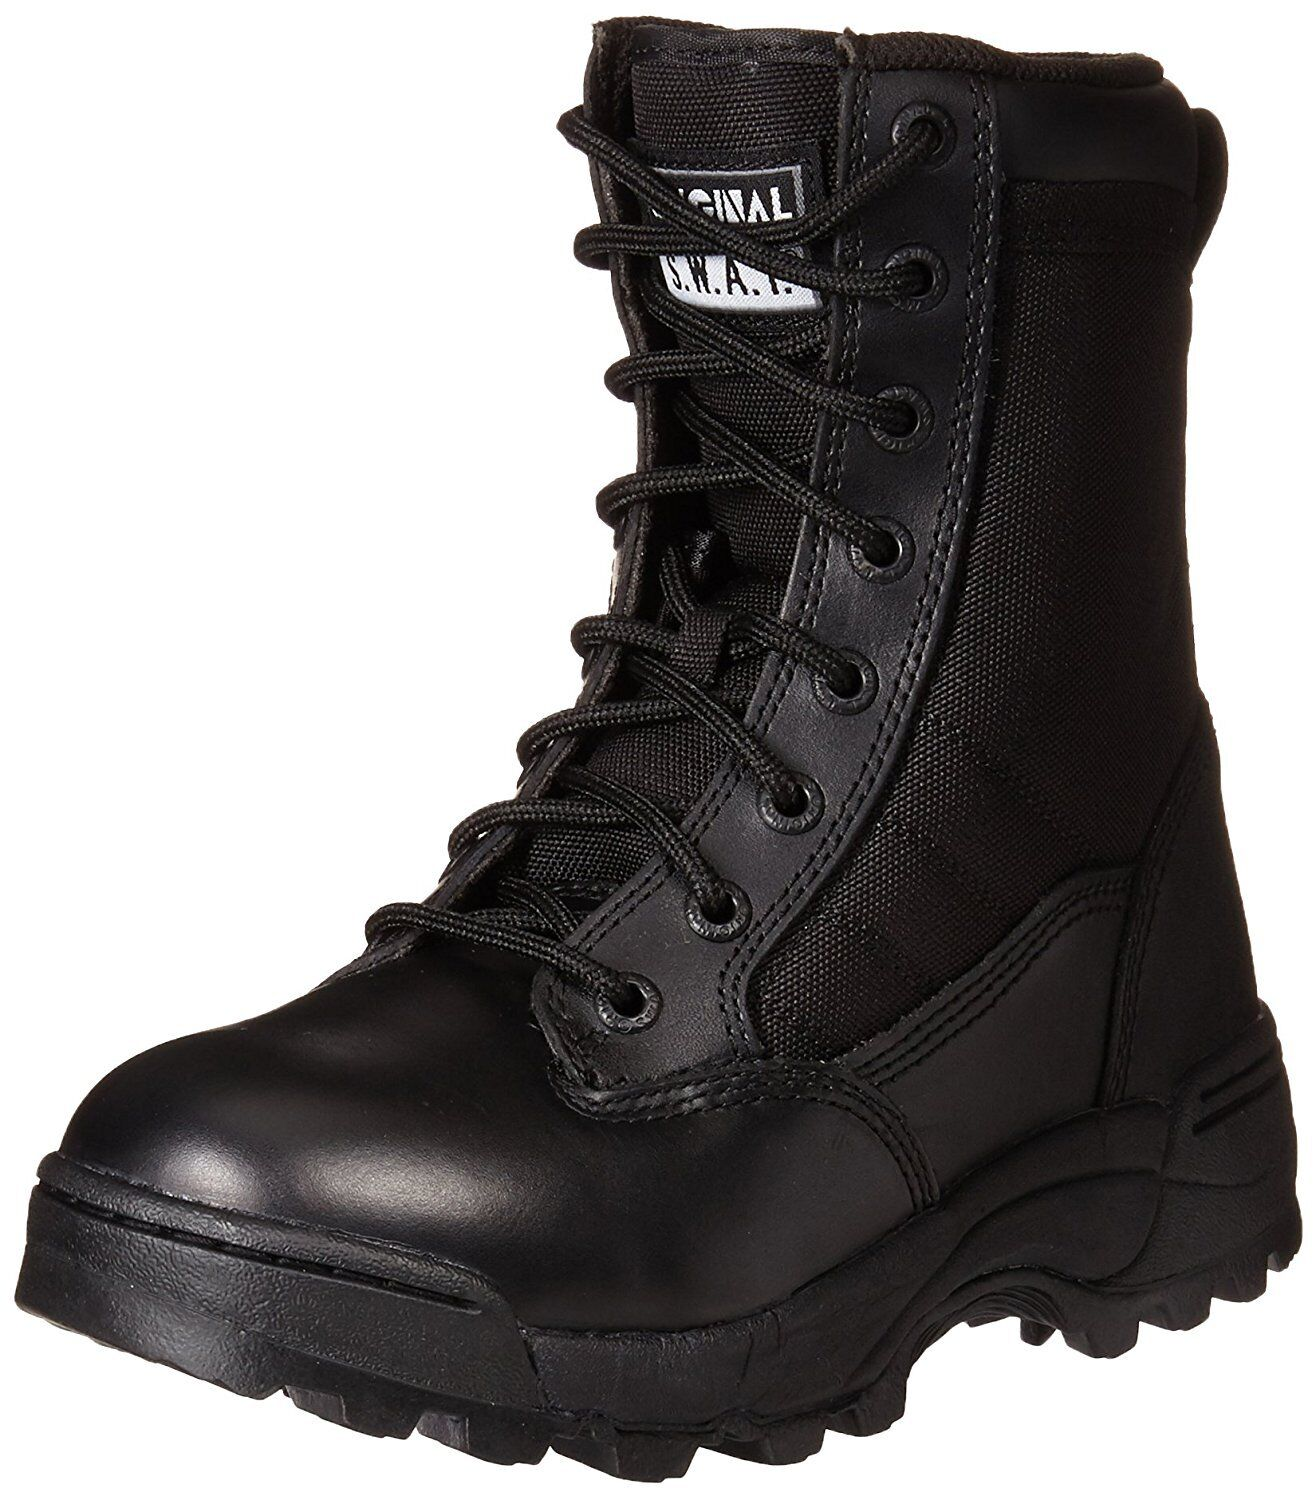 Original S.W.A.T. 115011 Mujeres Clásico 9 in (approx. 22.86 cm) Tactical bota,'s Negro